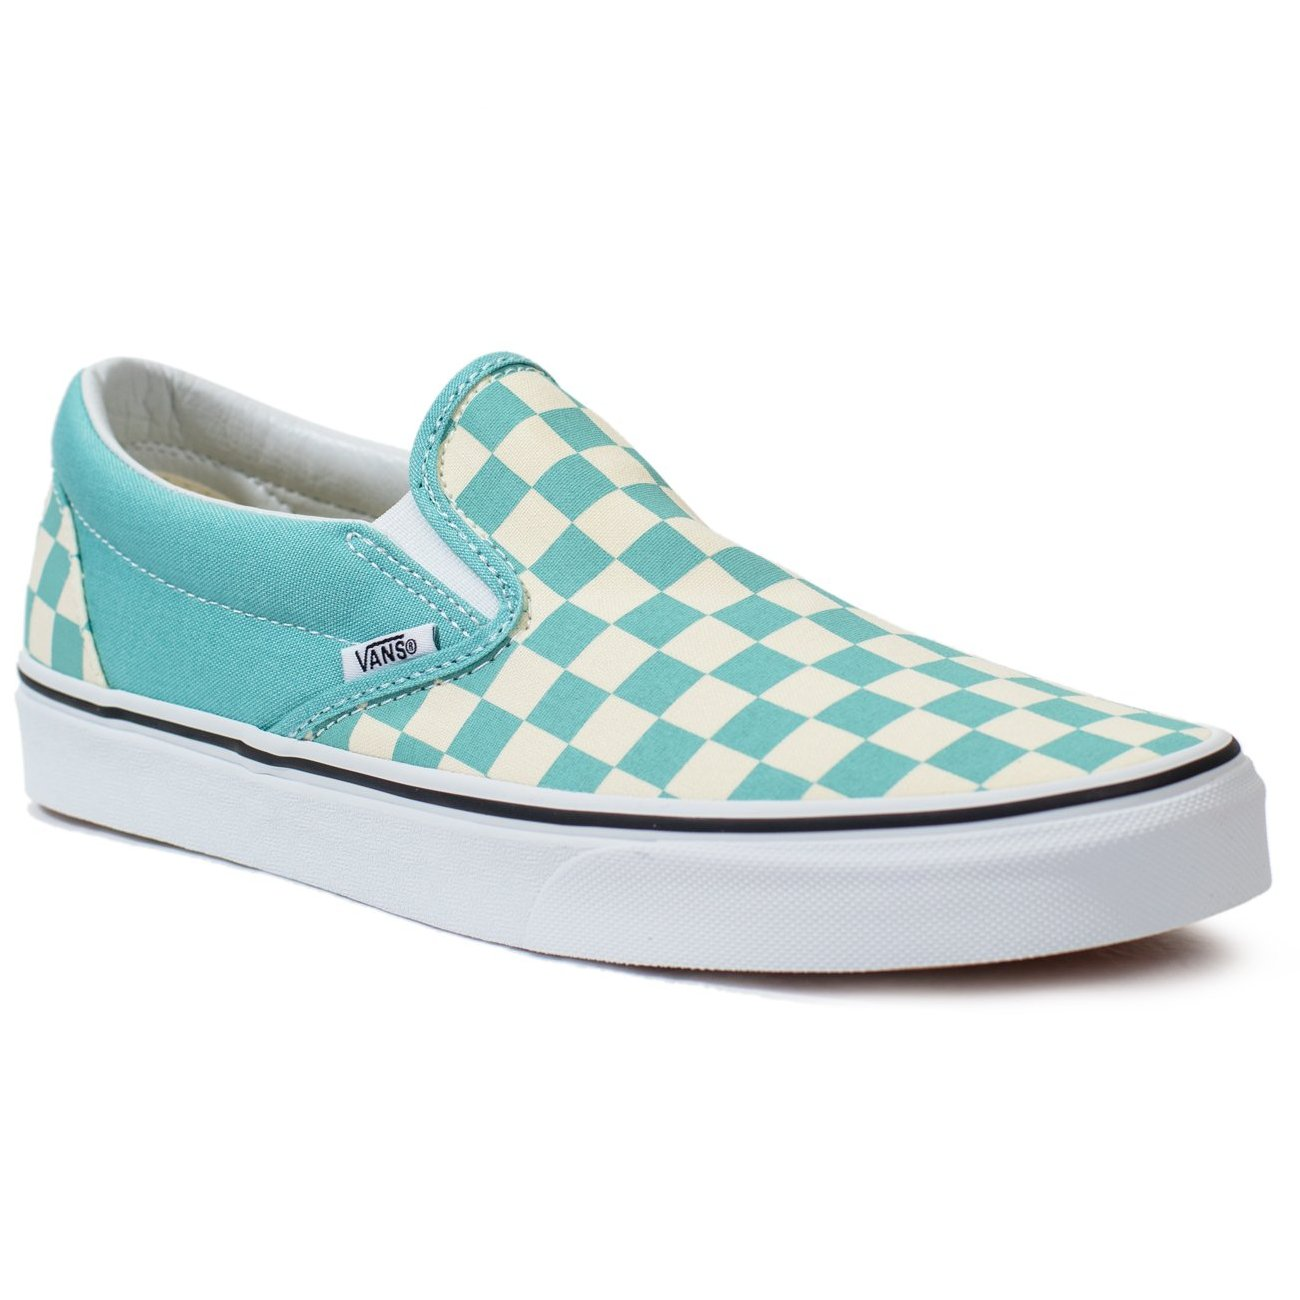 530241252b16f Vans Slip-on (Checkerboard) - Aqua Haze/True White